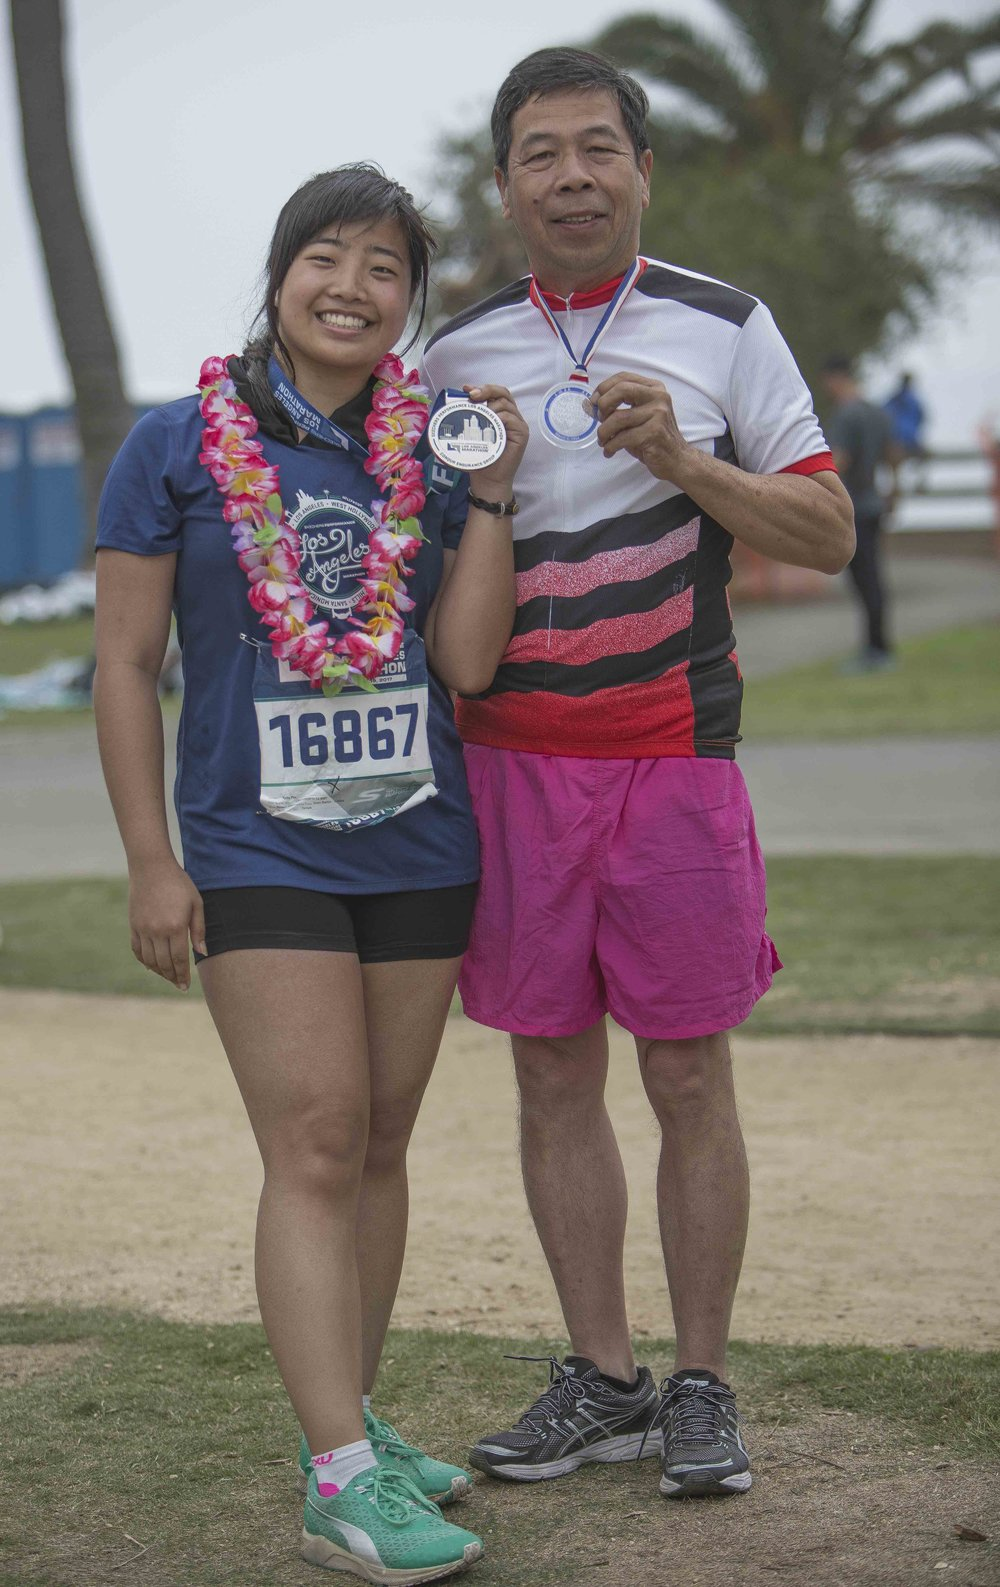 March 19, 2017. Kathy Pho (left) shows off her medal after completing The La Marathon and stands with her father Que Pho (right) who ran The LA Marathon in 1994 show off his medal. Kathy Pho finished the marathon in five hours fourty nine minutes fifty four seconds. Santa Monica, California. Photo by Daniel Bowyer.